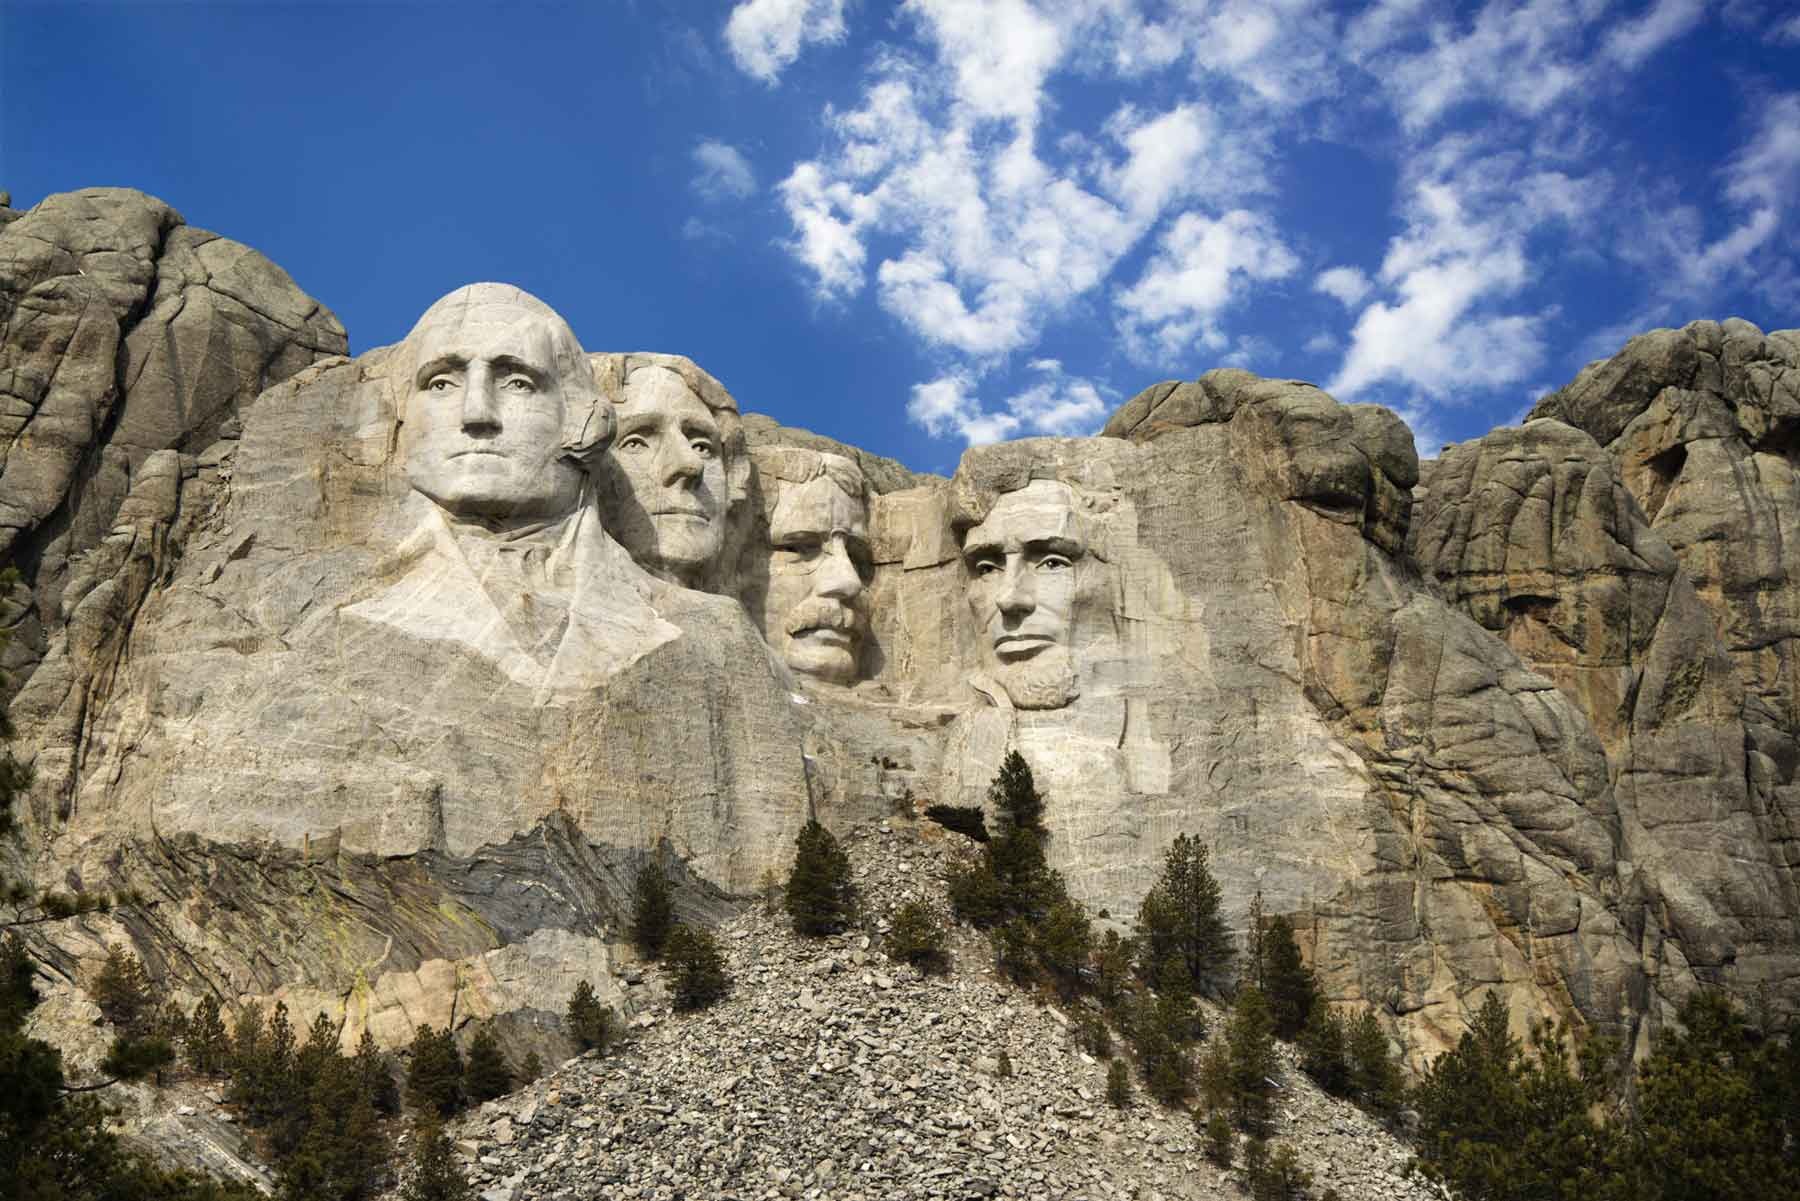 Mount Rushmore National Memorial Scenic